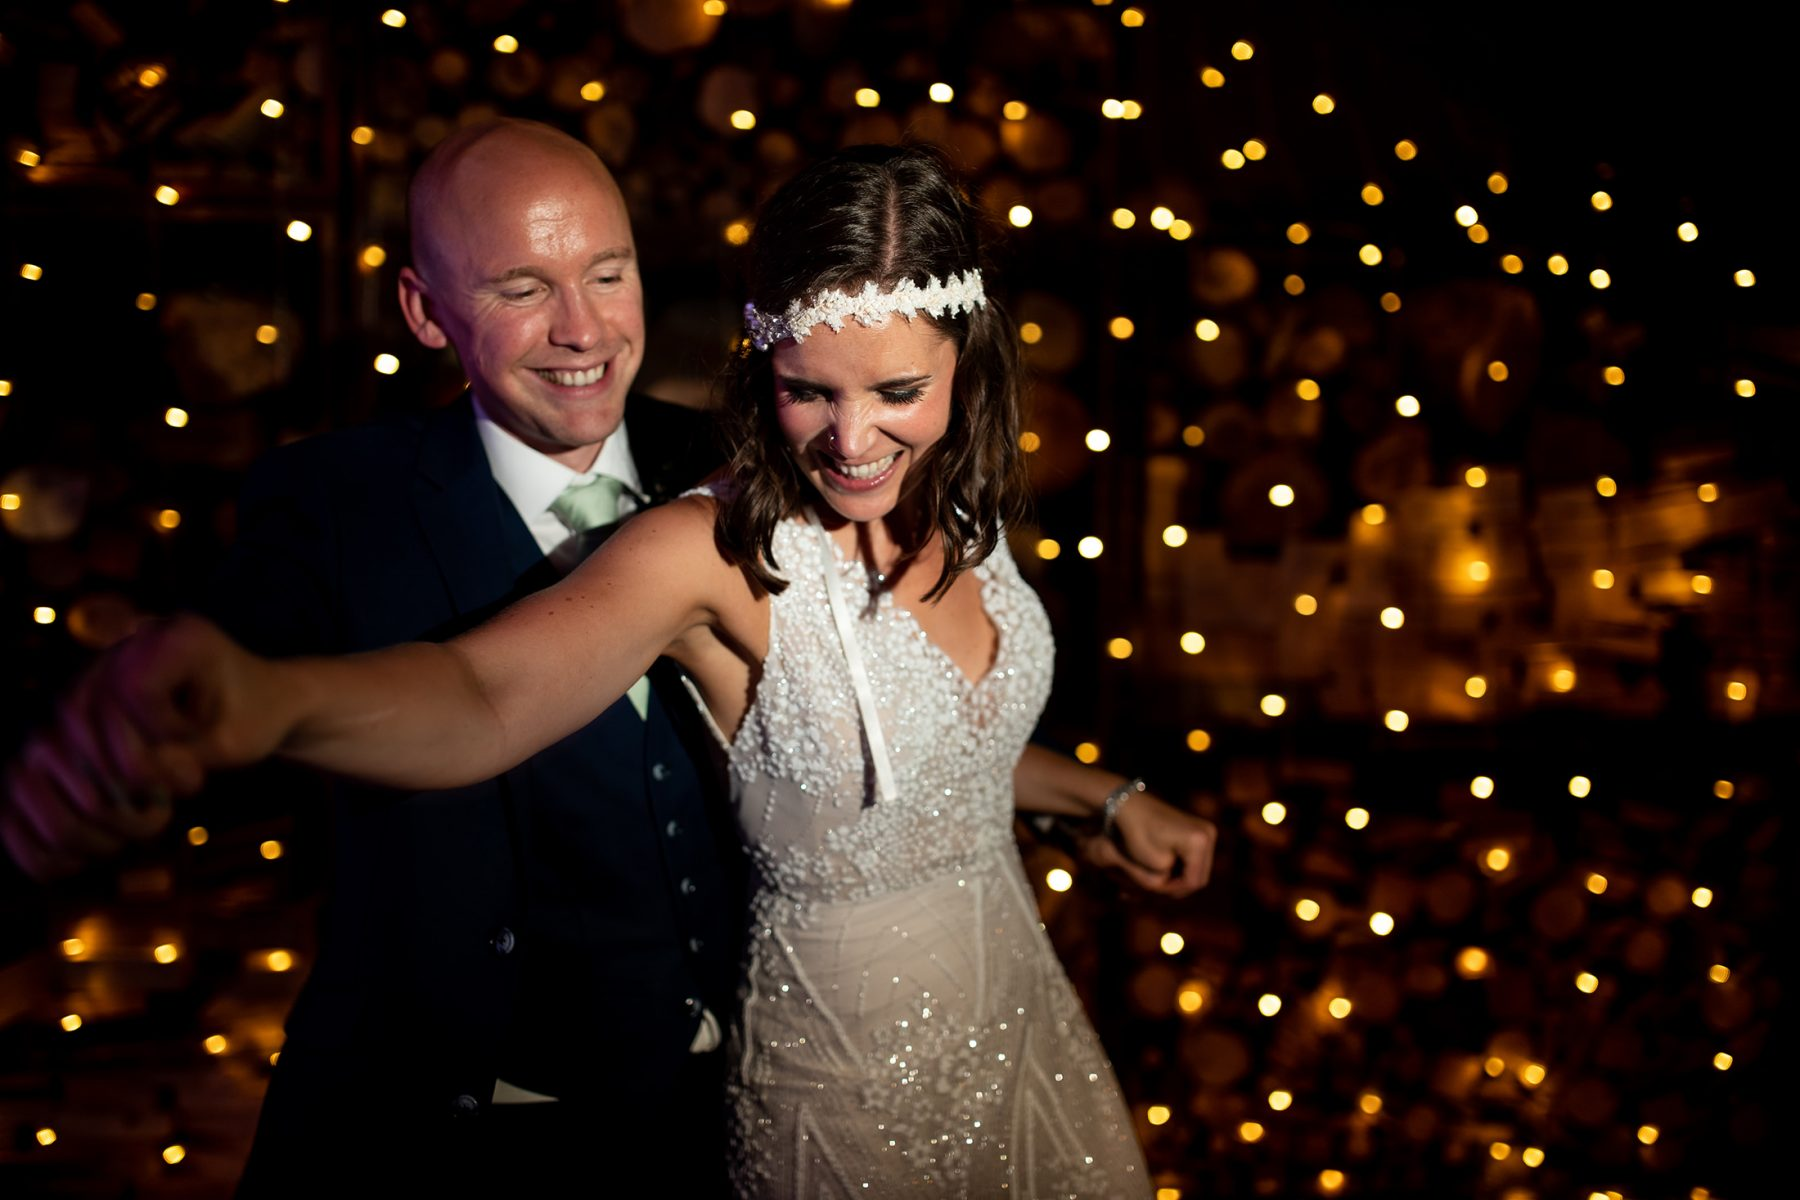 A relaxed wedding photograph showing a relaxed bride and groom as they dance after their wedding